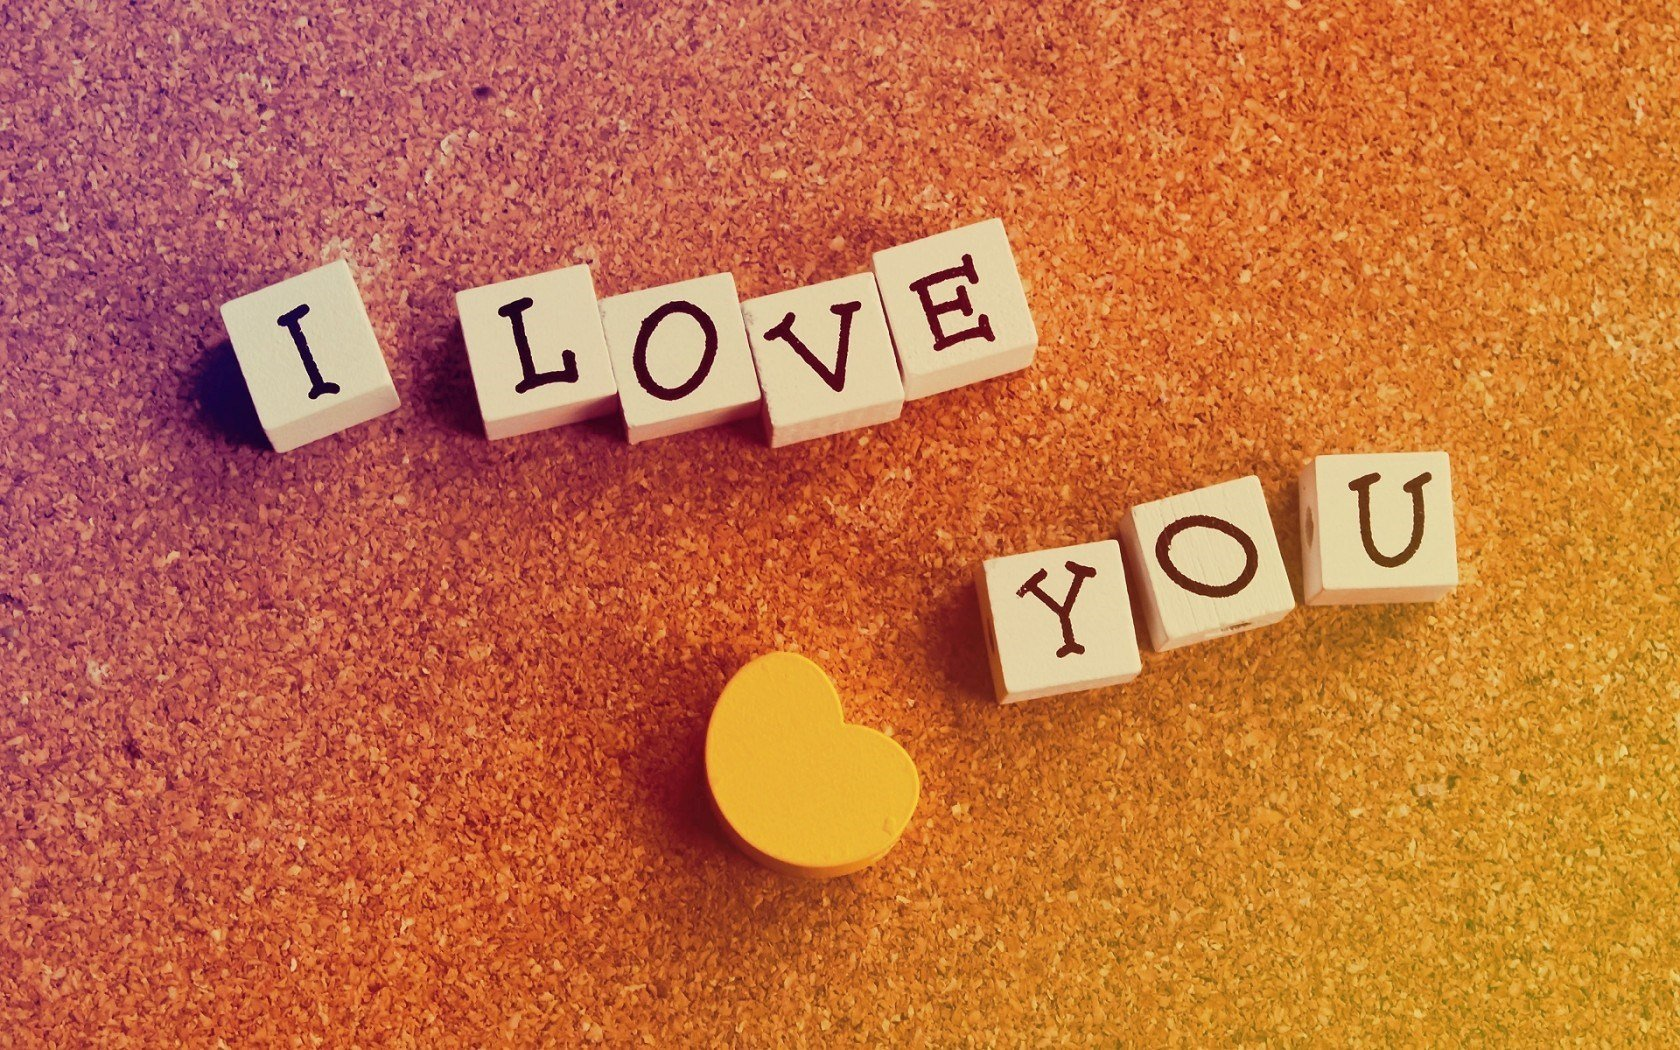 Hd wallpaper i love you - Love You Wallpapers Hd Live Hd Wallpaper Hq Pictures Images